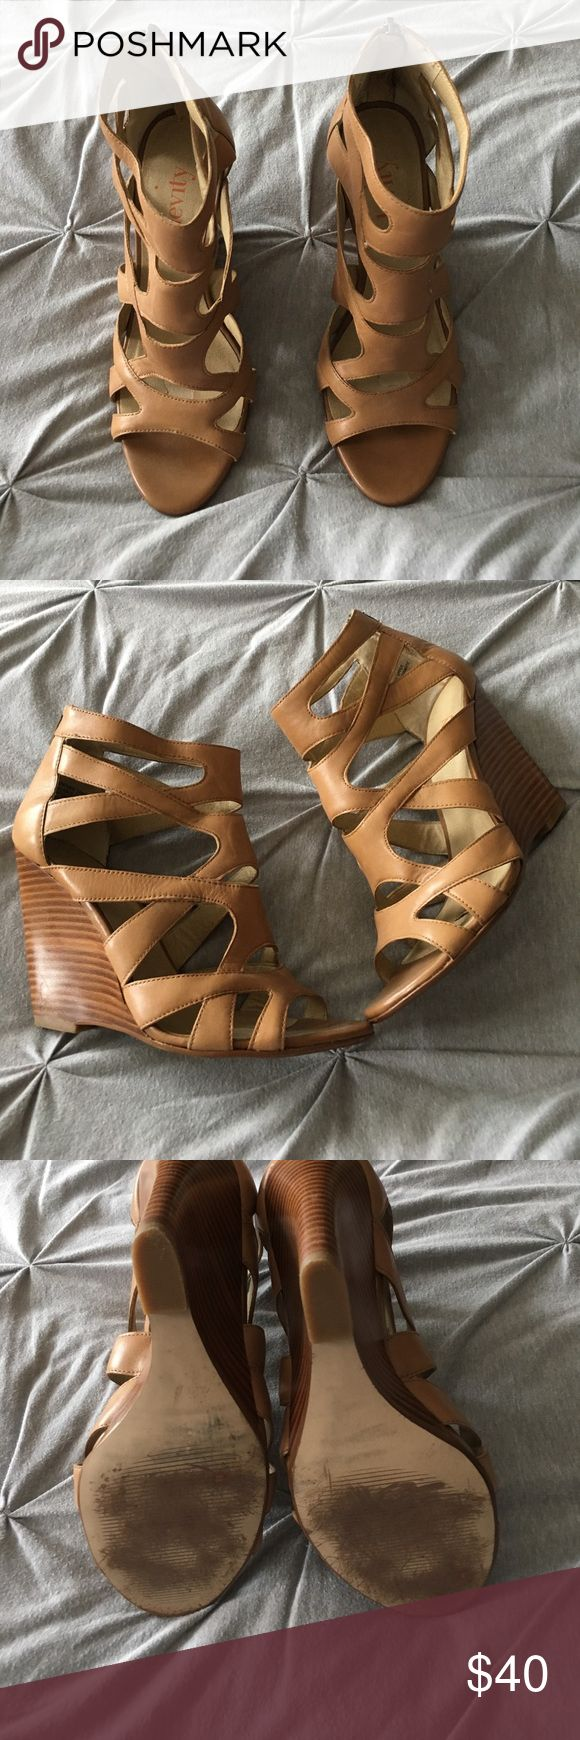 strappy brown platform heels tan brown strappy platform  4inch heels great condition - had sticky pads on soles (they left marks inside that would easily be covered up while wearing) - love these. just too high for me now :) levity Shoes Platforms